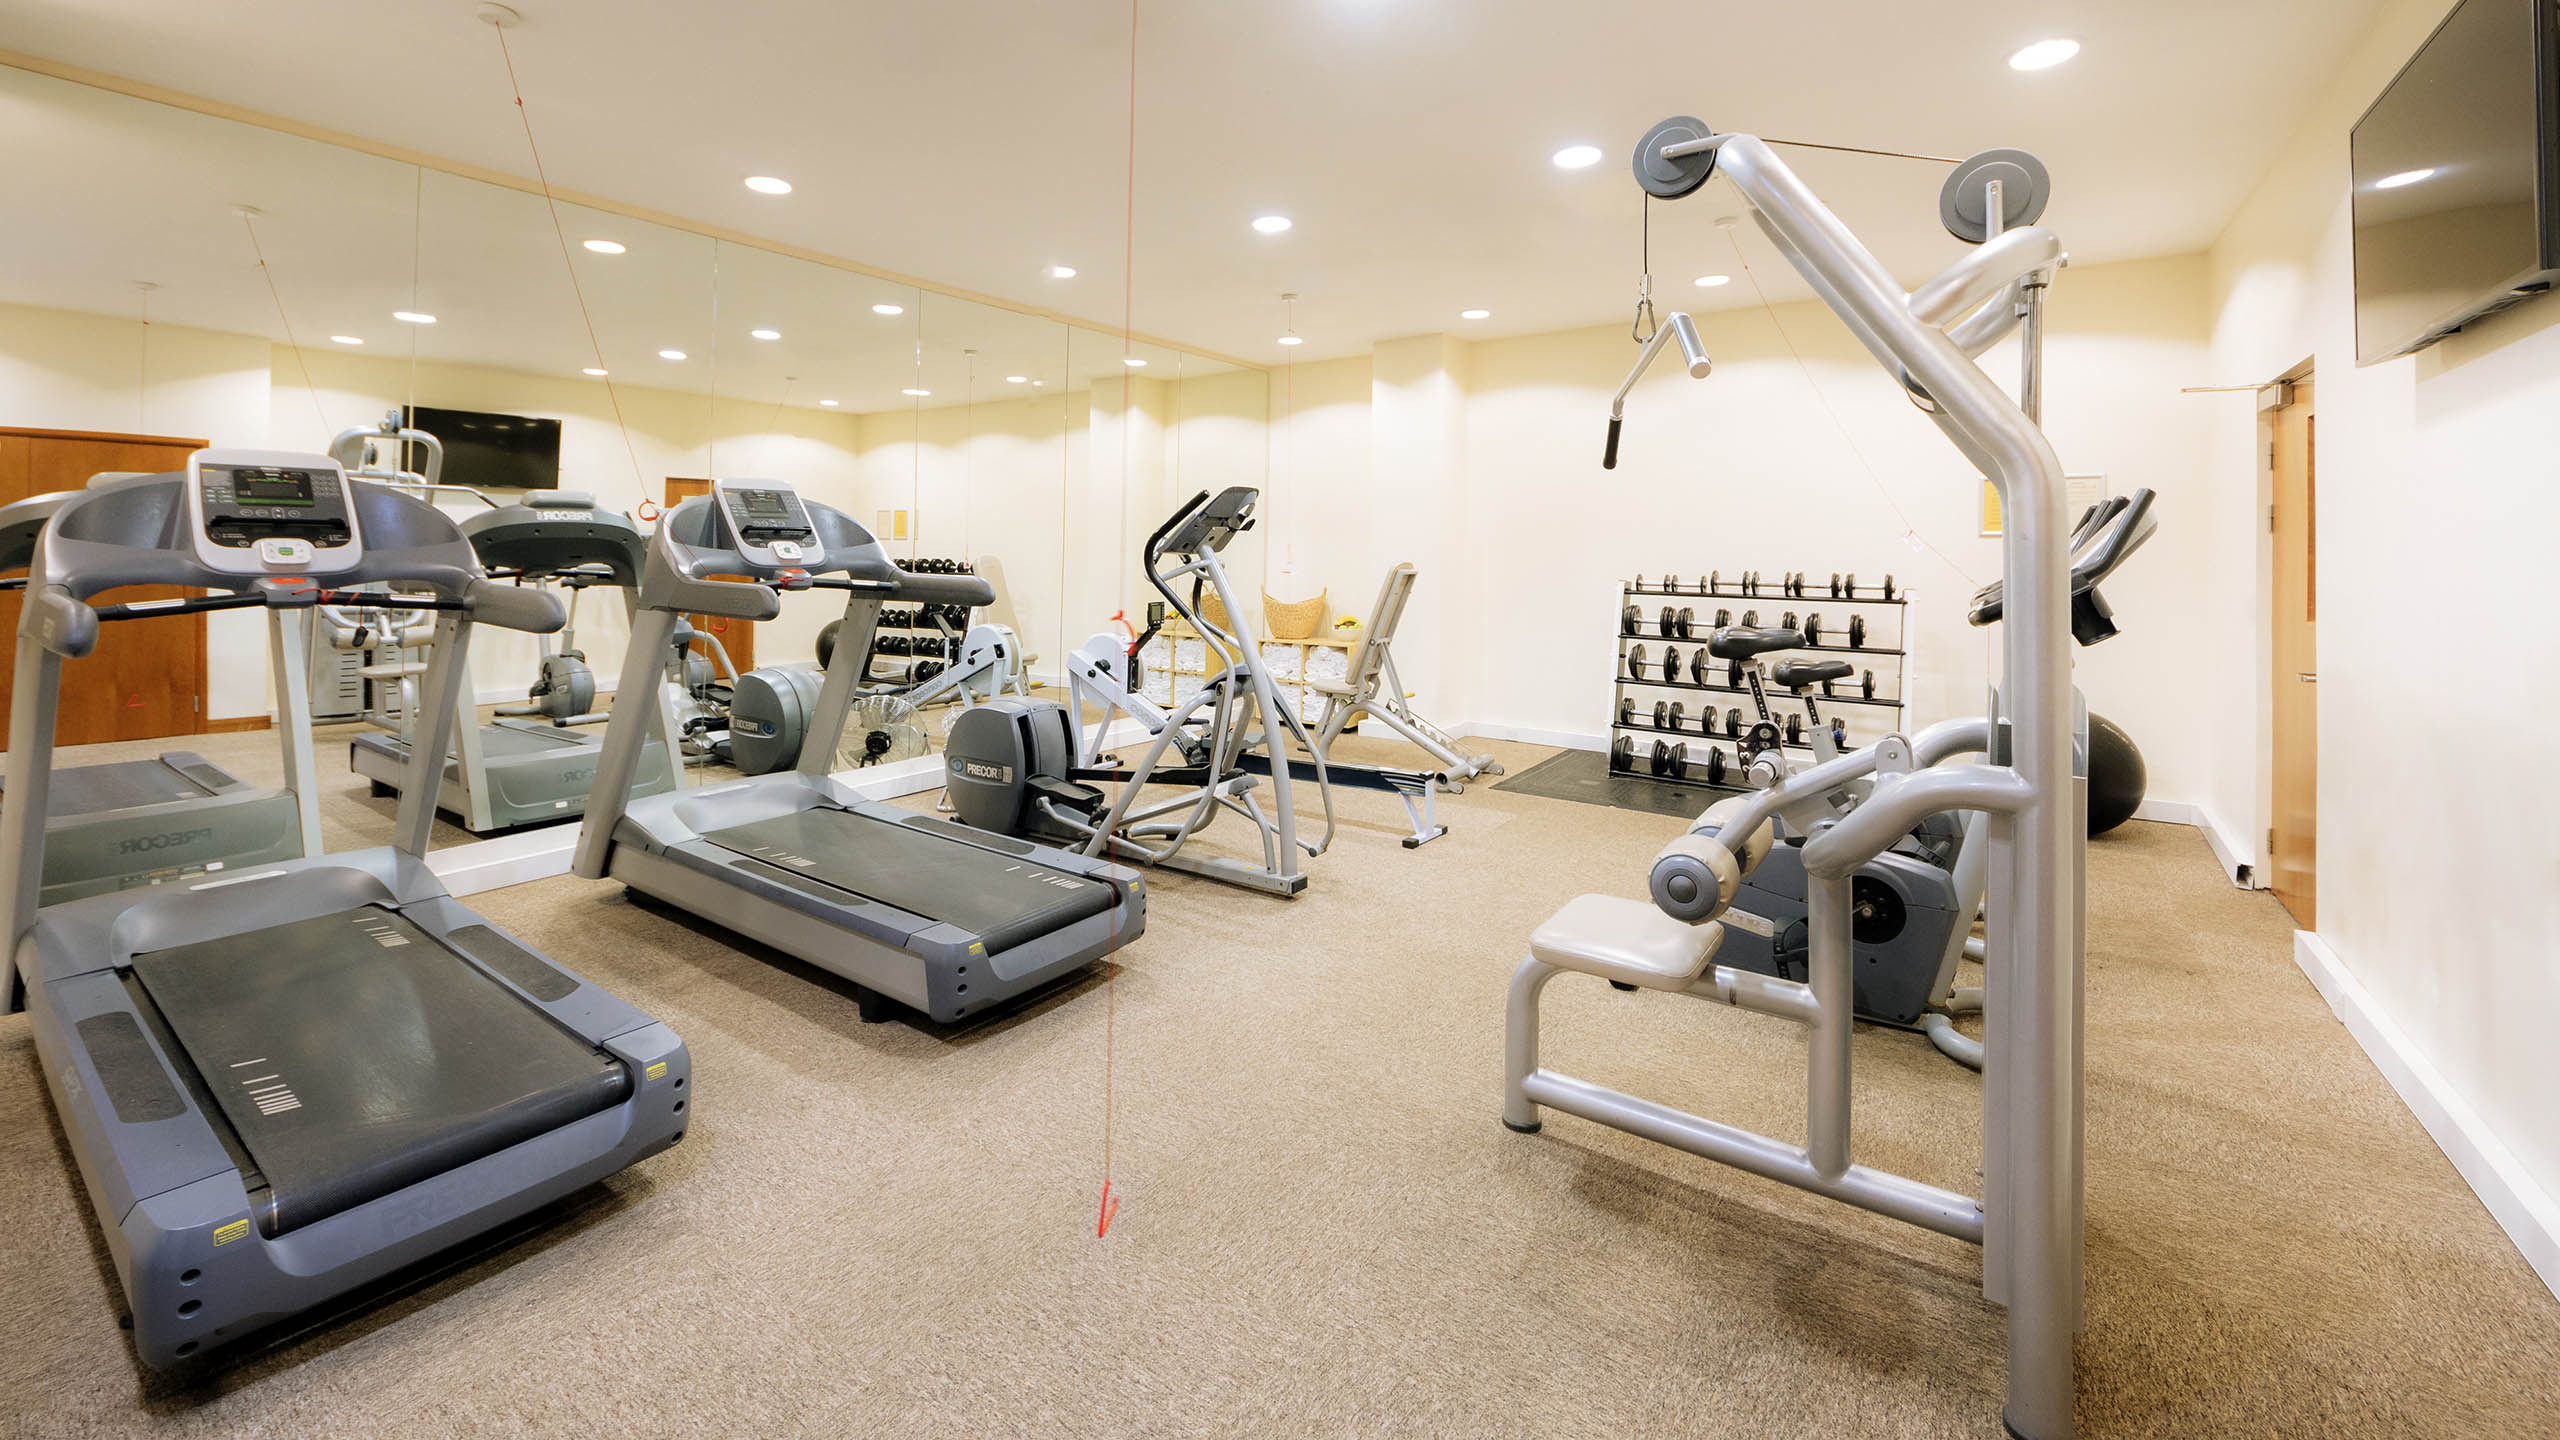 The best gyms and fitness classes to try in london in